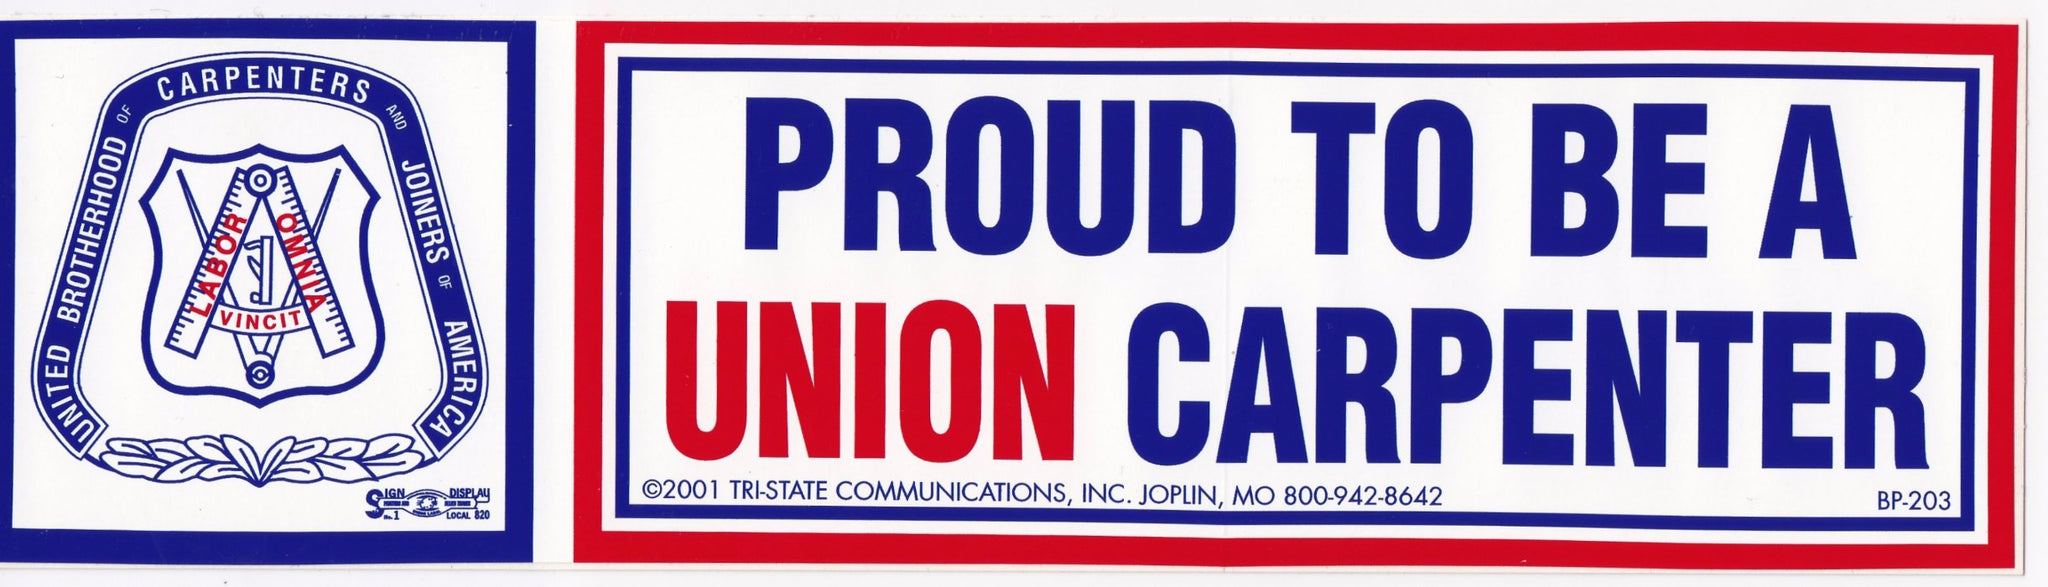 'Proud to be a Union Carpenter' Bumper Sticker #BP203